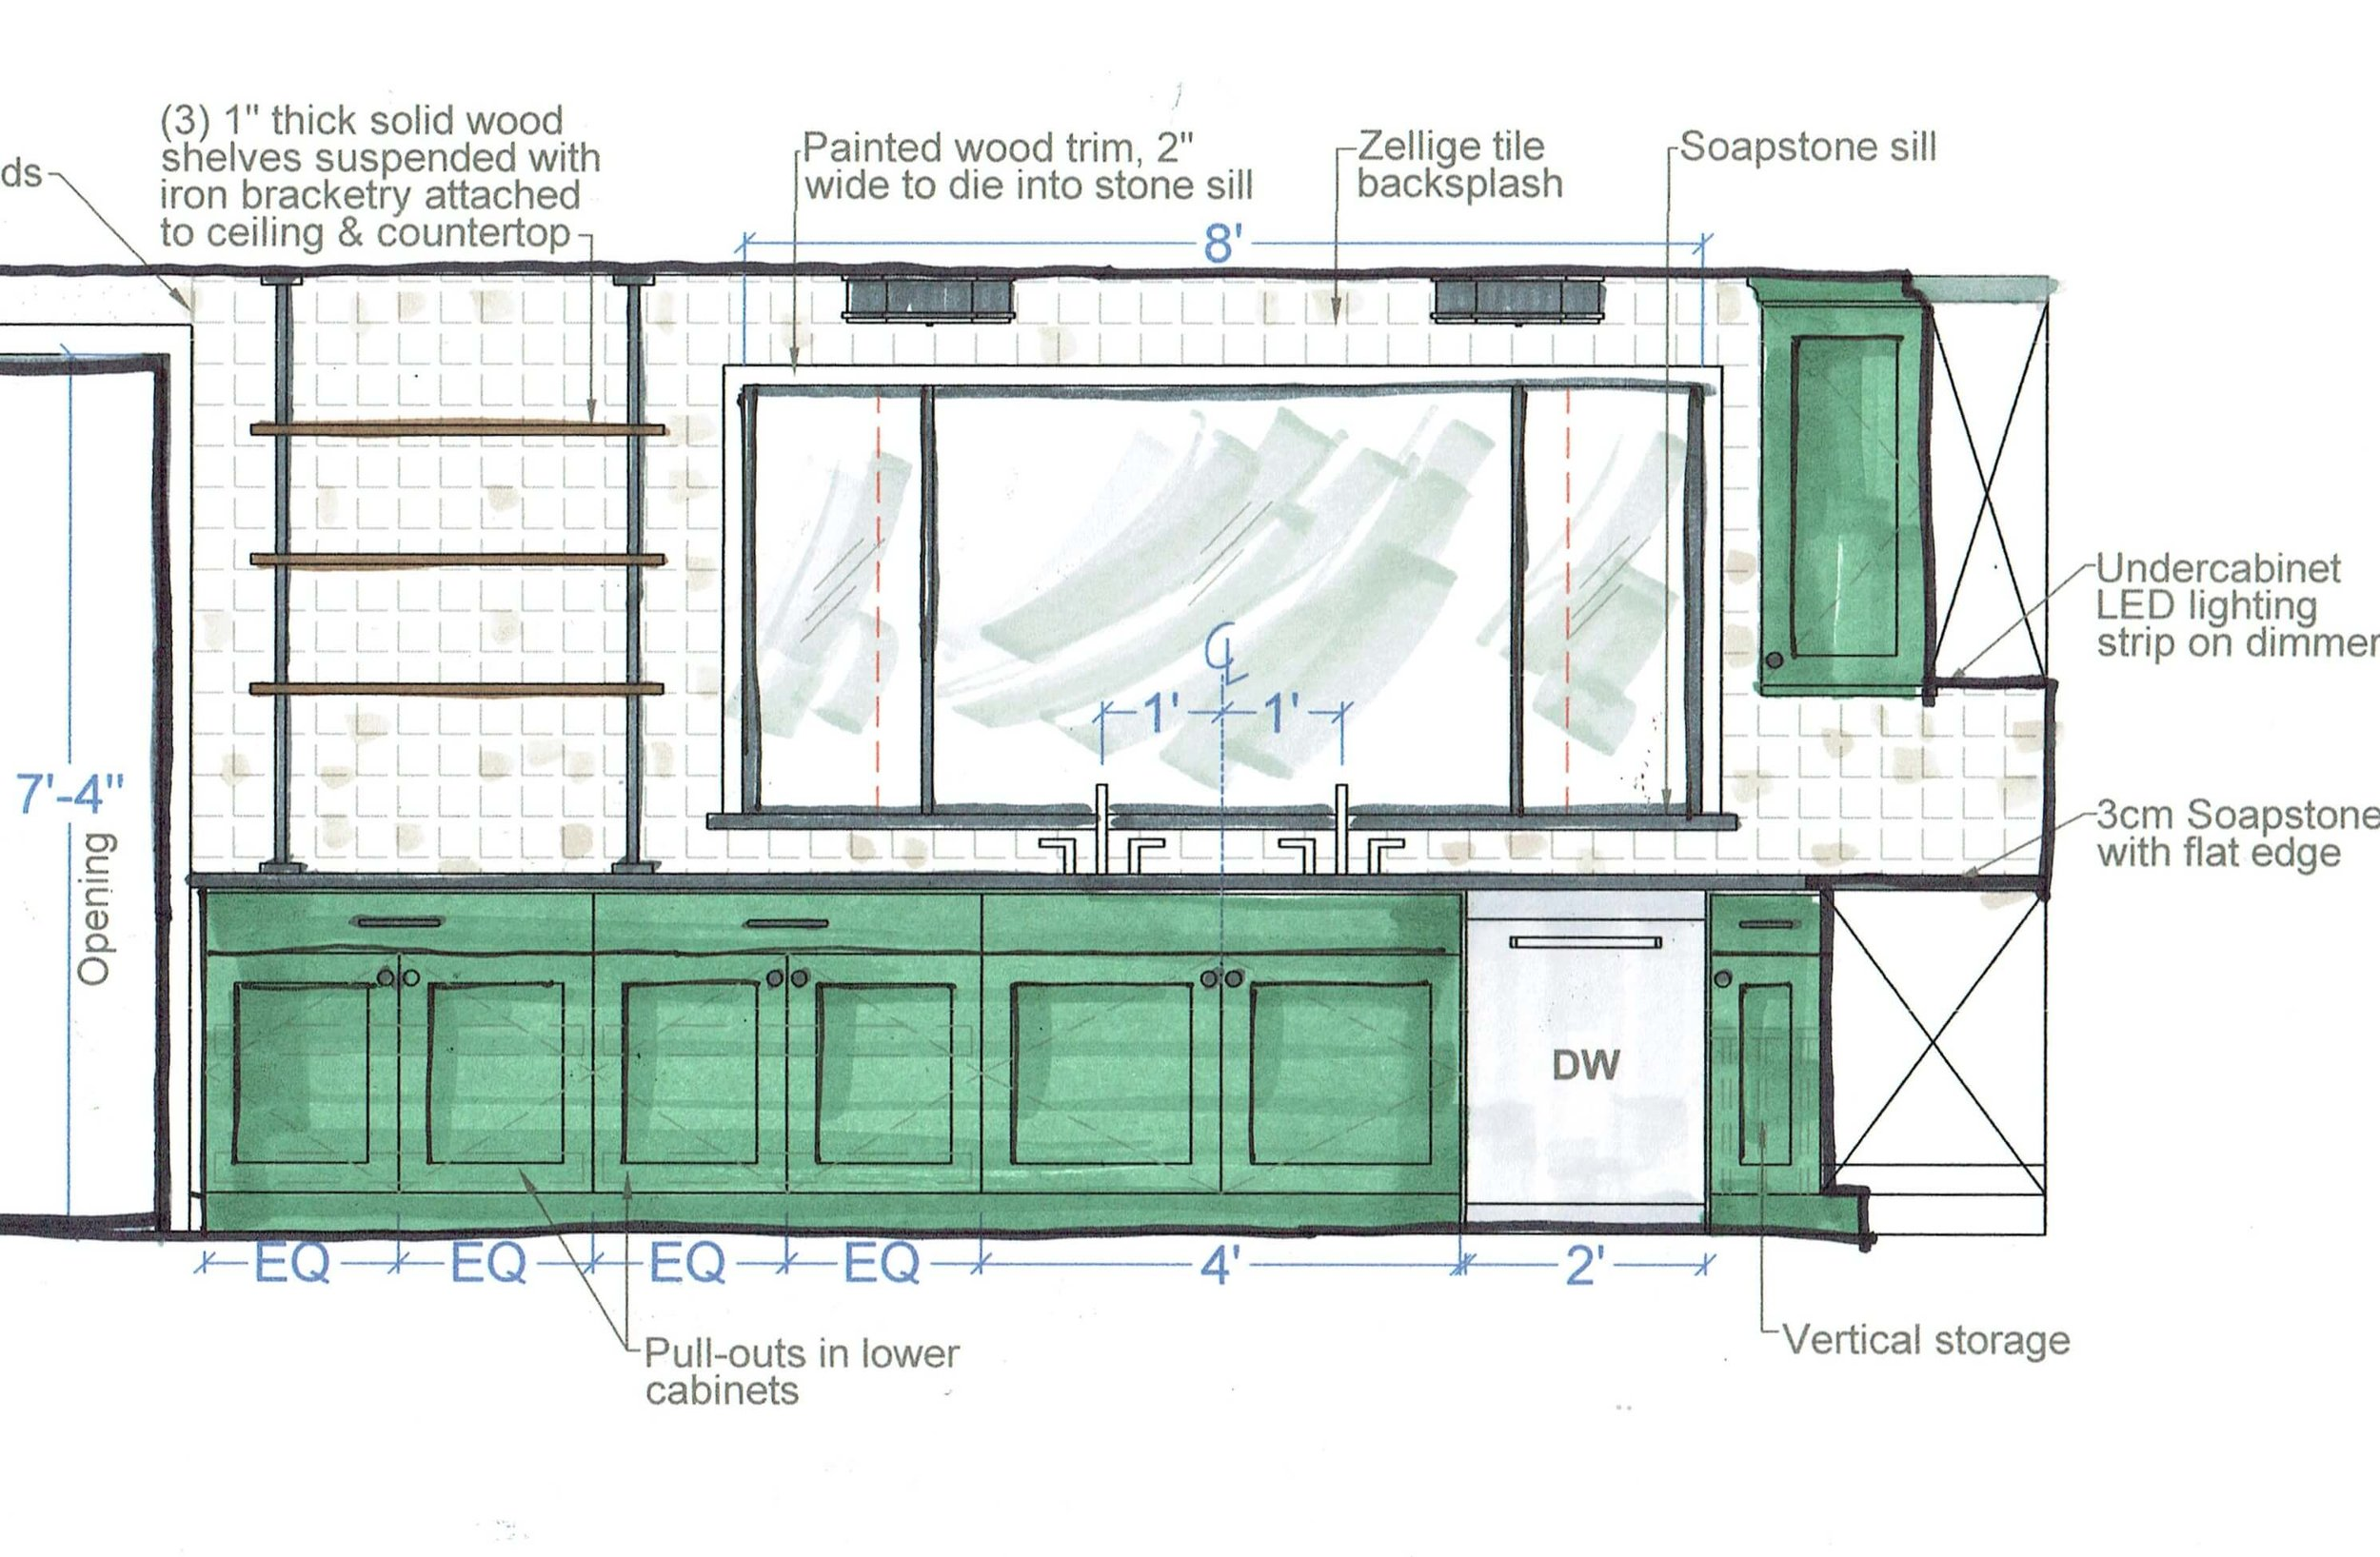 Kitchen wall elevation with new vibrantly painted cabinetry, soapstone counters, Zellige tile wall, new window and an extra long sink with two faucets. #kitchendesign #kitchendesignideas